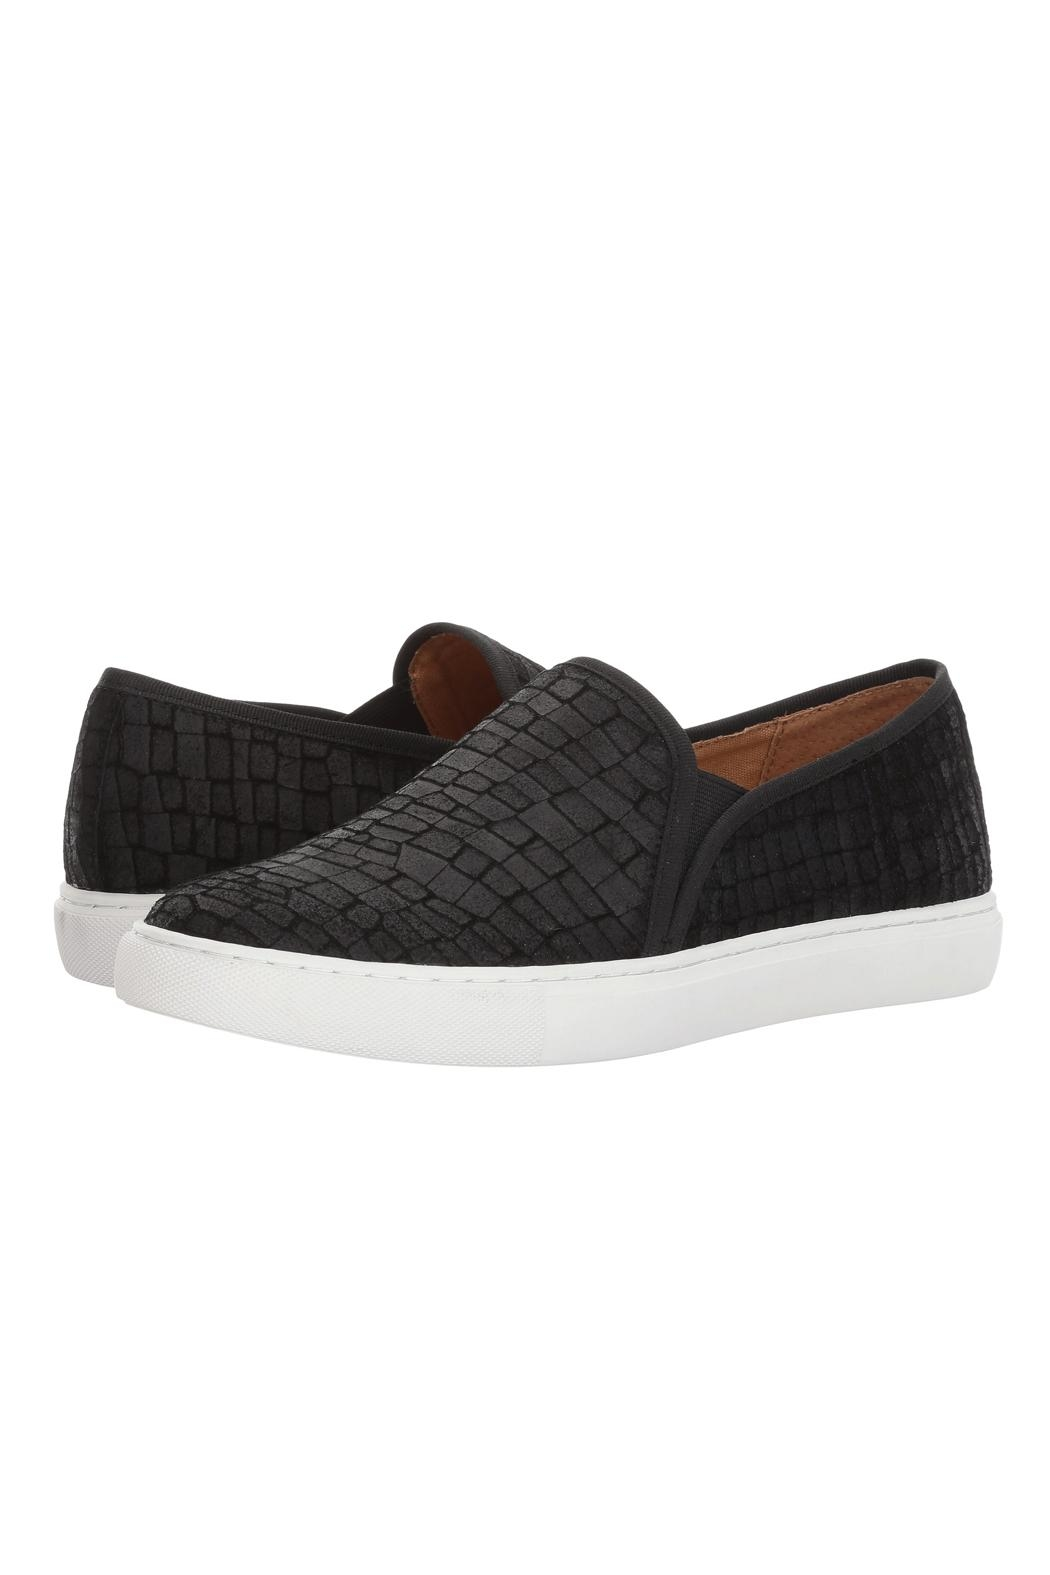 Corso Como Black Textured Slip On - Main Image